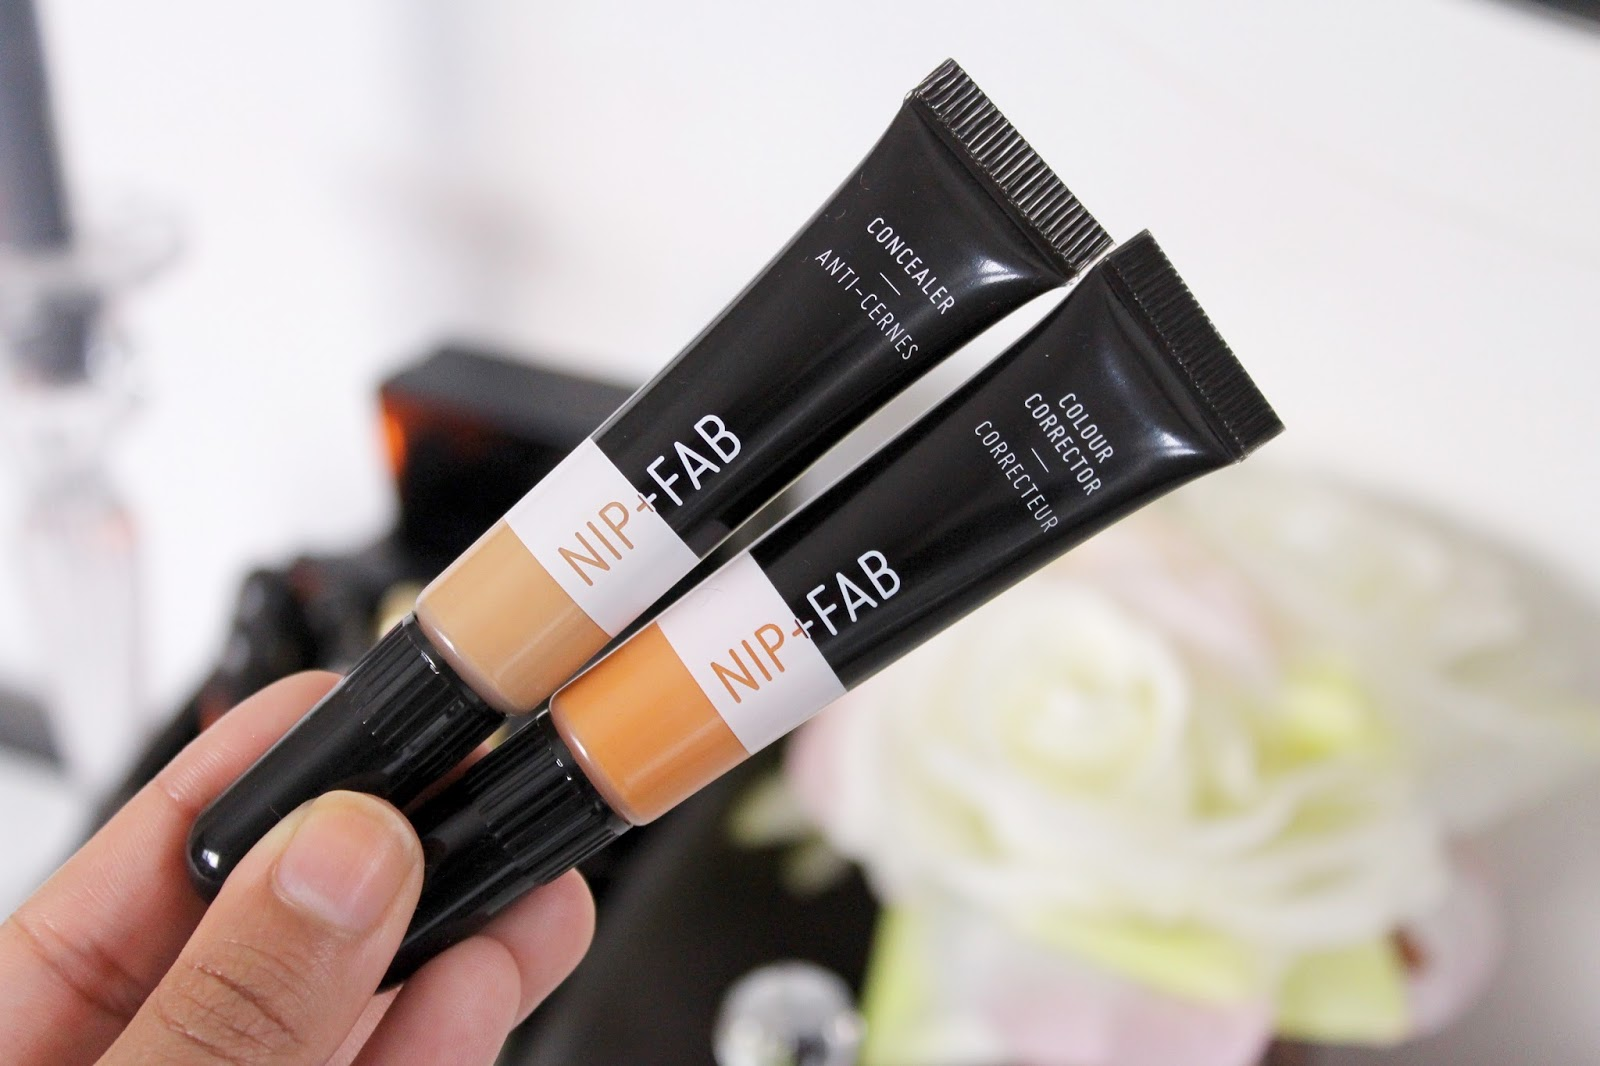 Nip fab concealercorrector review little london blogger a few days ago i picked up the concealer in 20 and the orange corrector after seeing quite a few people on instagram using them in mini tutorials izmirmasajfo